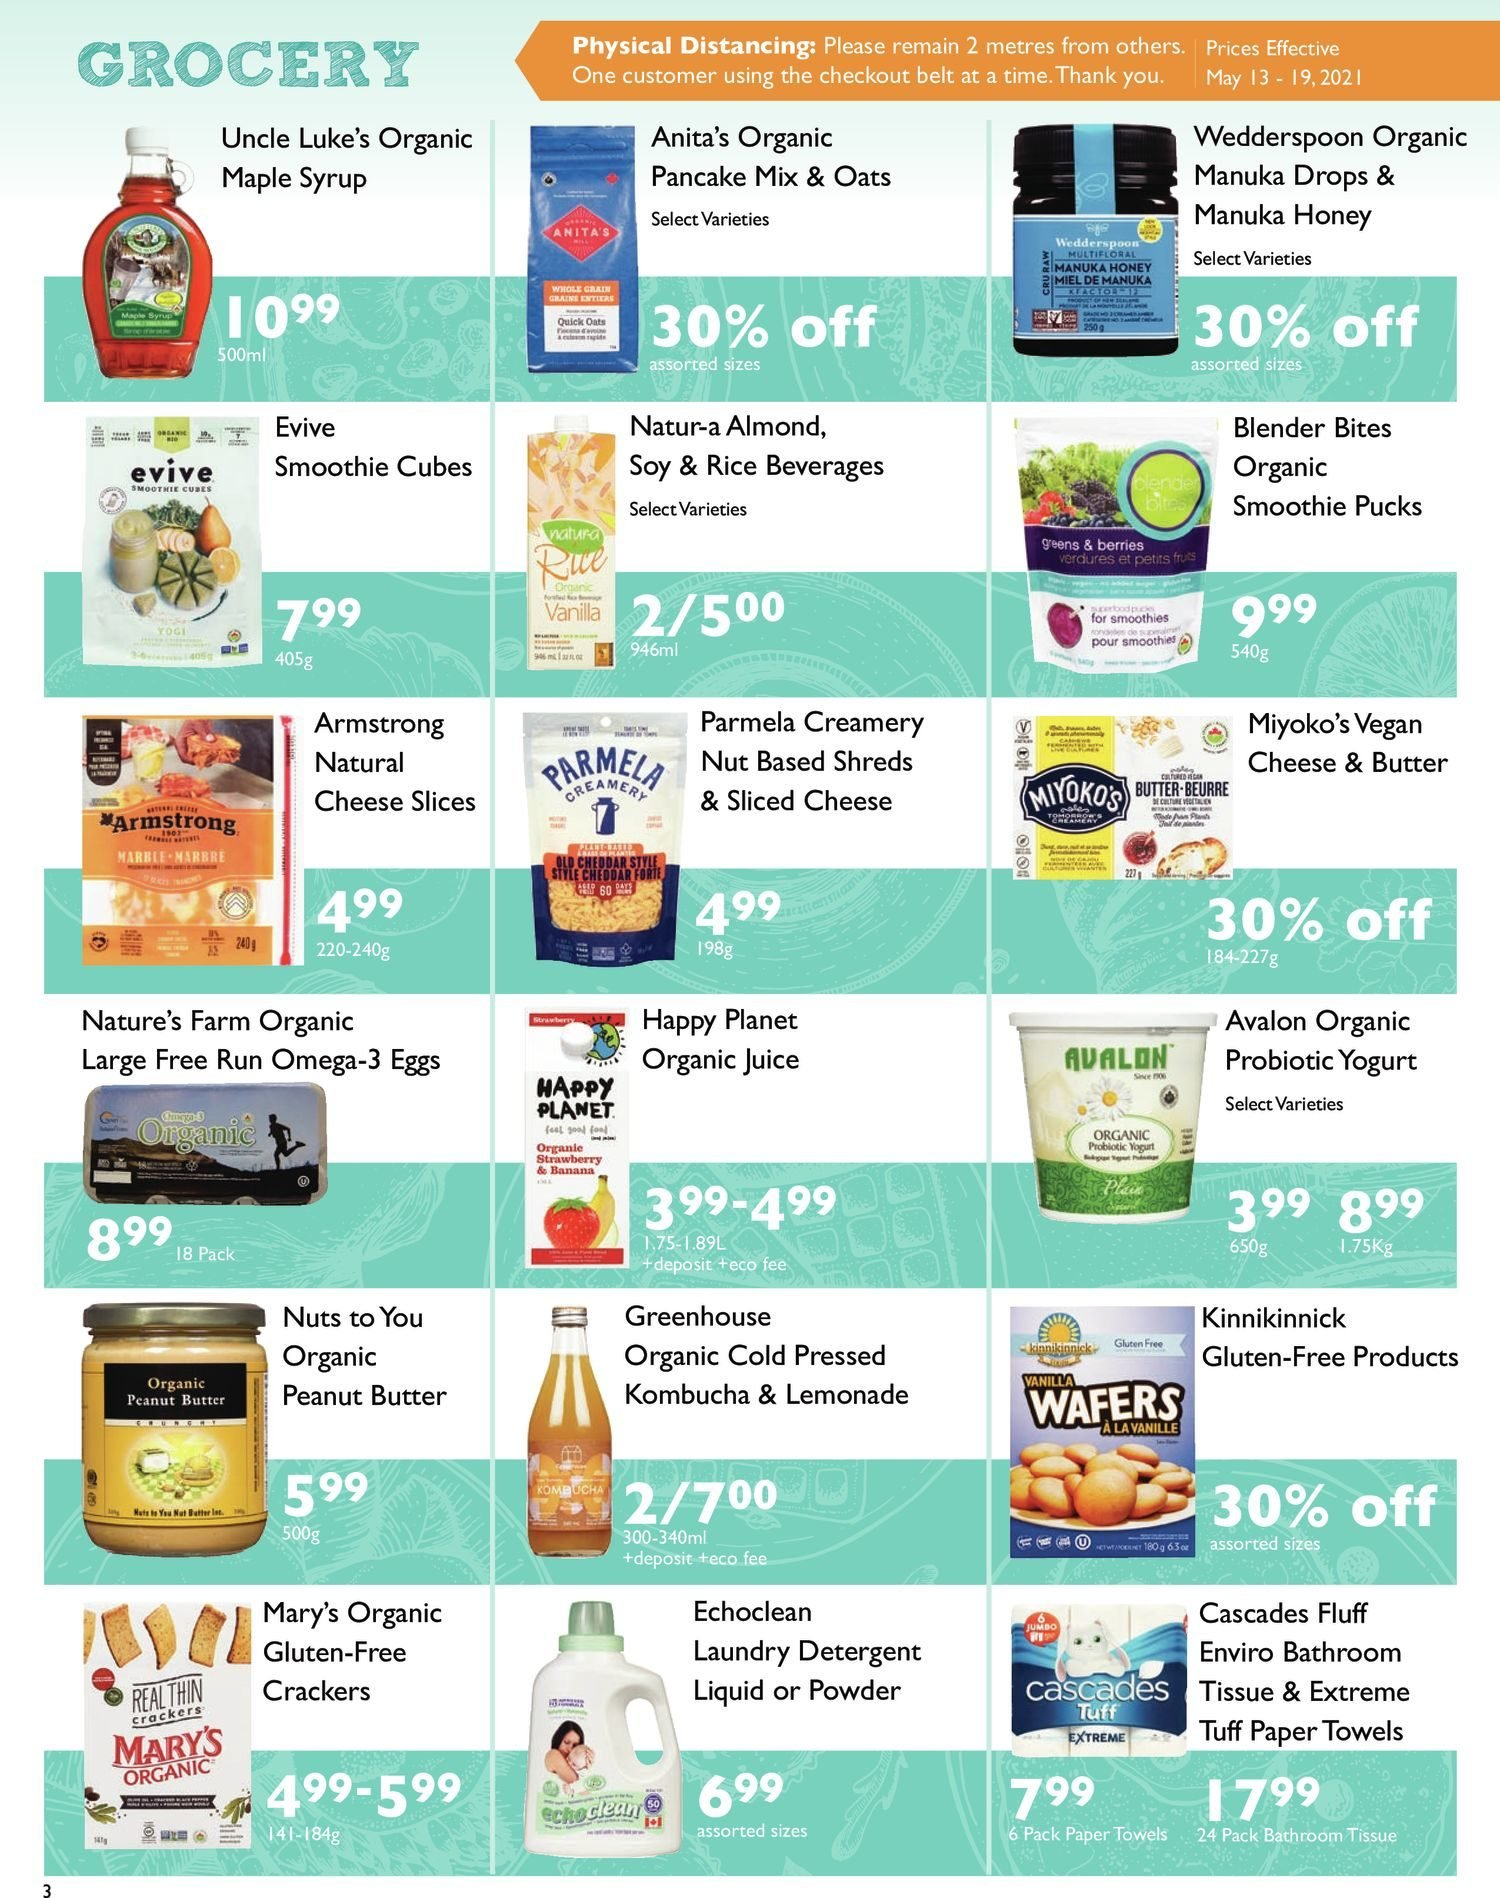 Choices Markets - Weekly Flyer Specials - Page 3